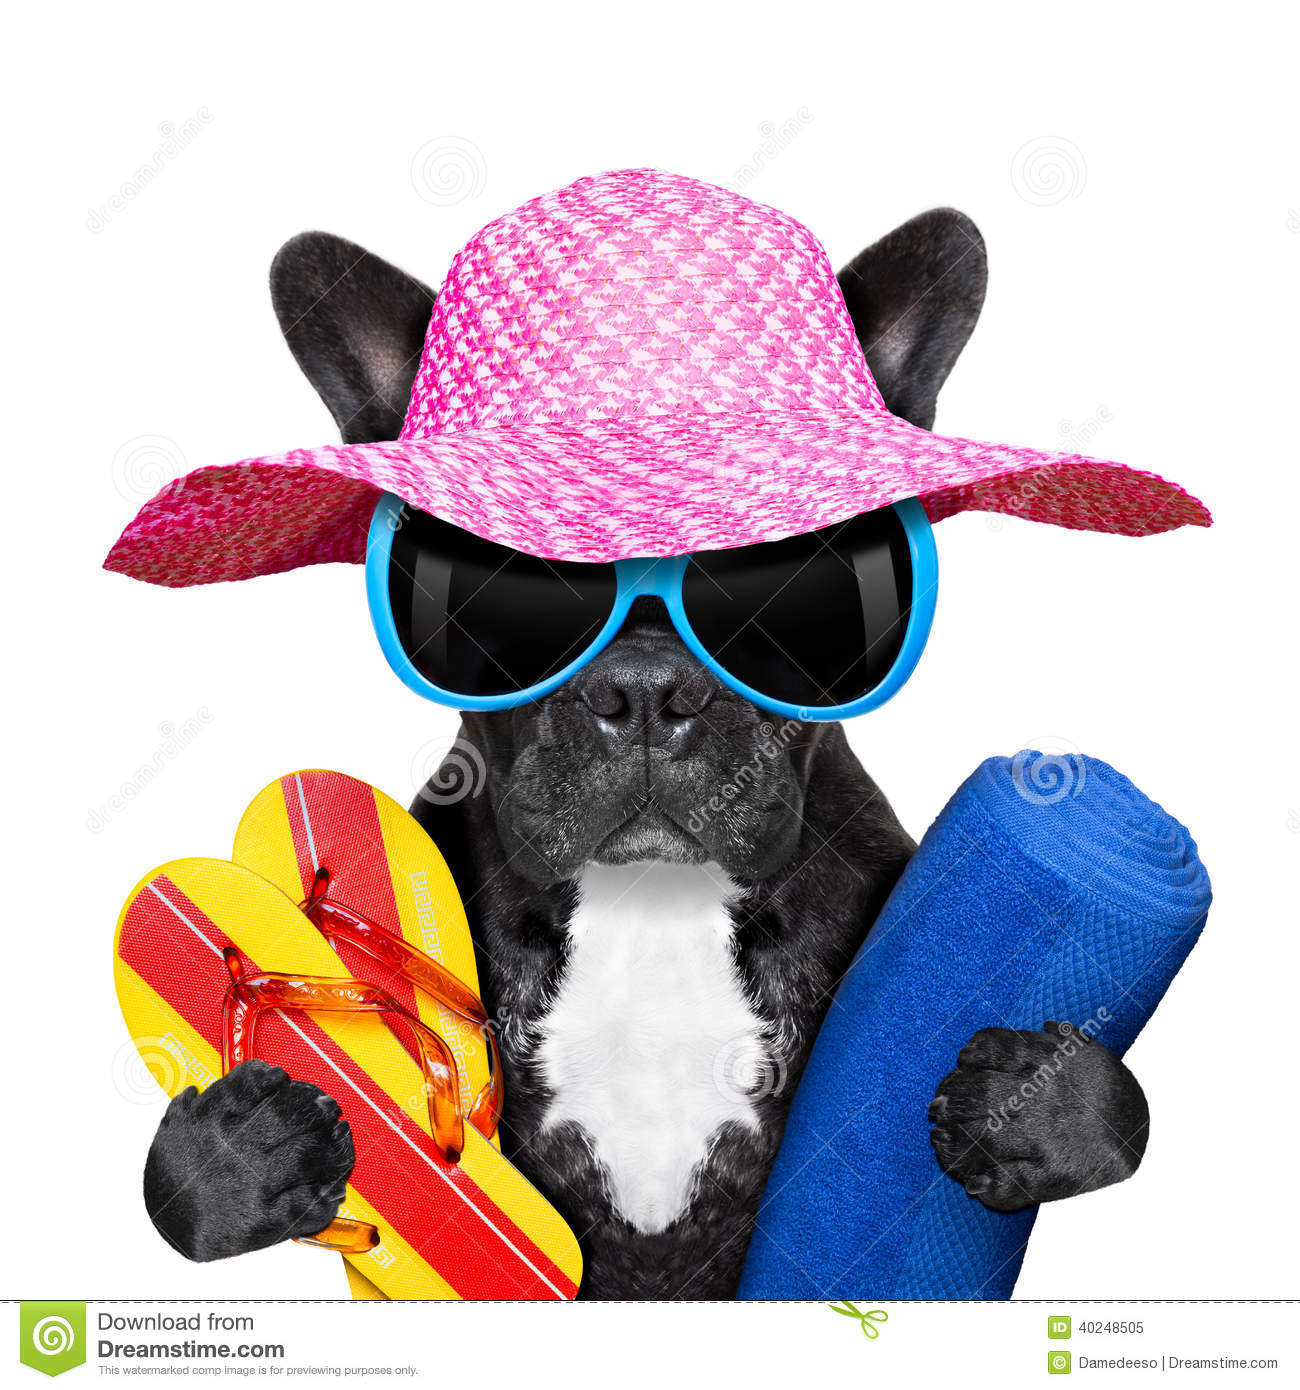 ff3676bfdeaf61 French Bulldog Vacation Stock Images - Download 317 Royalty Free Photos